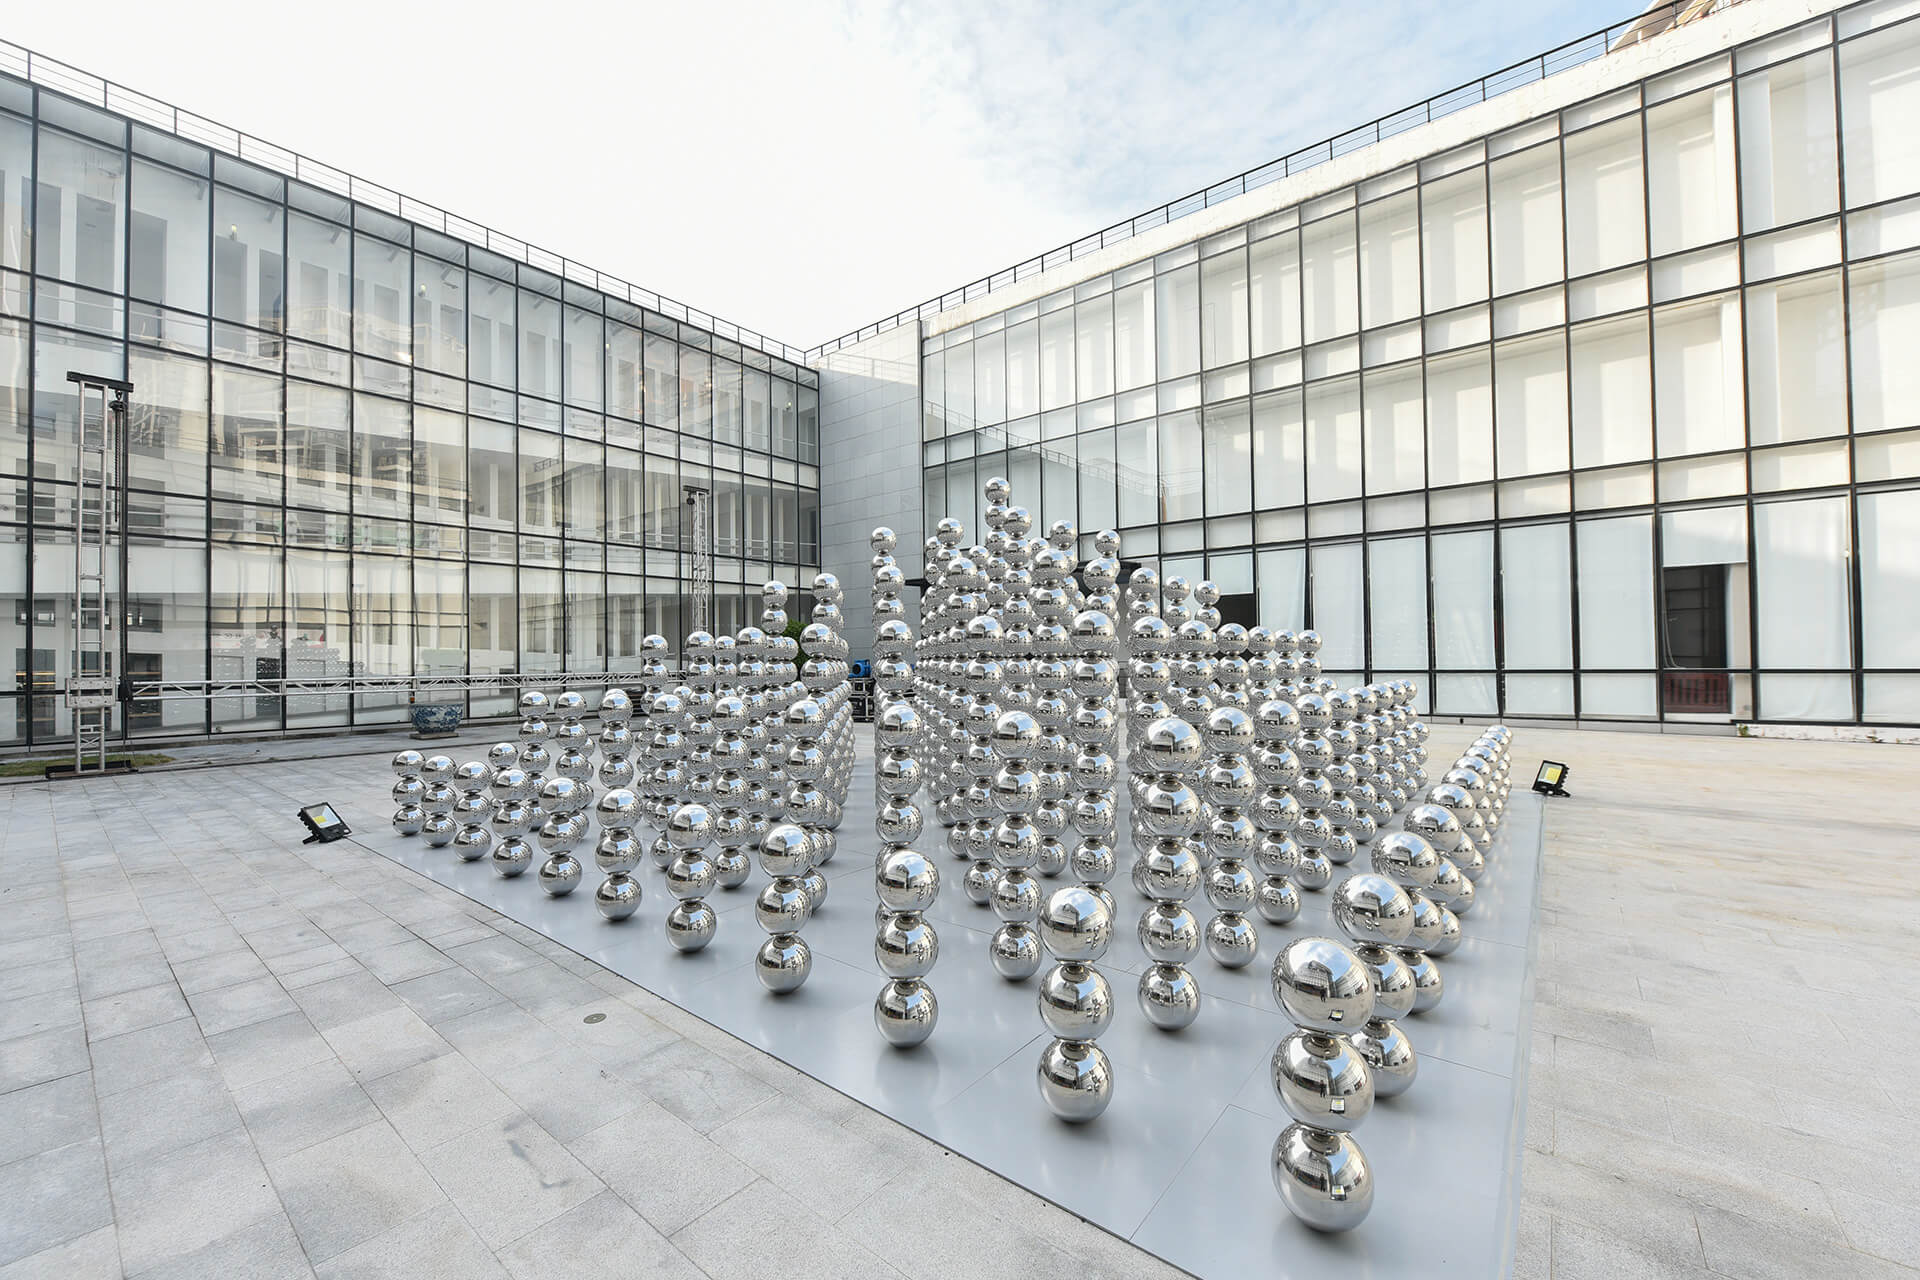 'Half Pyramid' by Lancelin, on display at Wavelength in Shenzhen, uses repetition of the metallic spheres to create a walkthrough installation | Wavelength by Cyril Lancelin | STIRworld